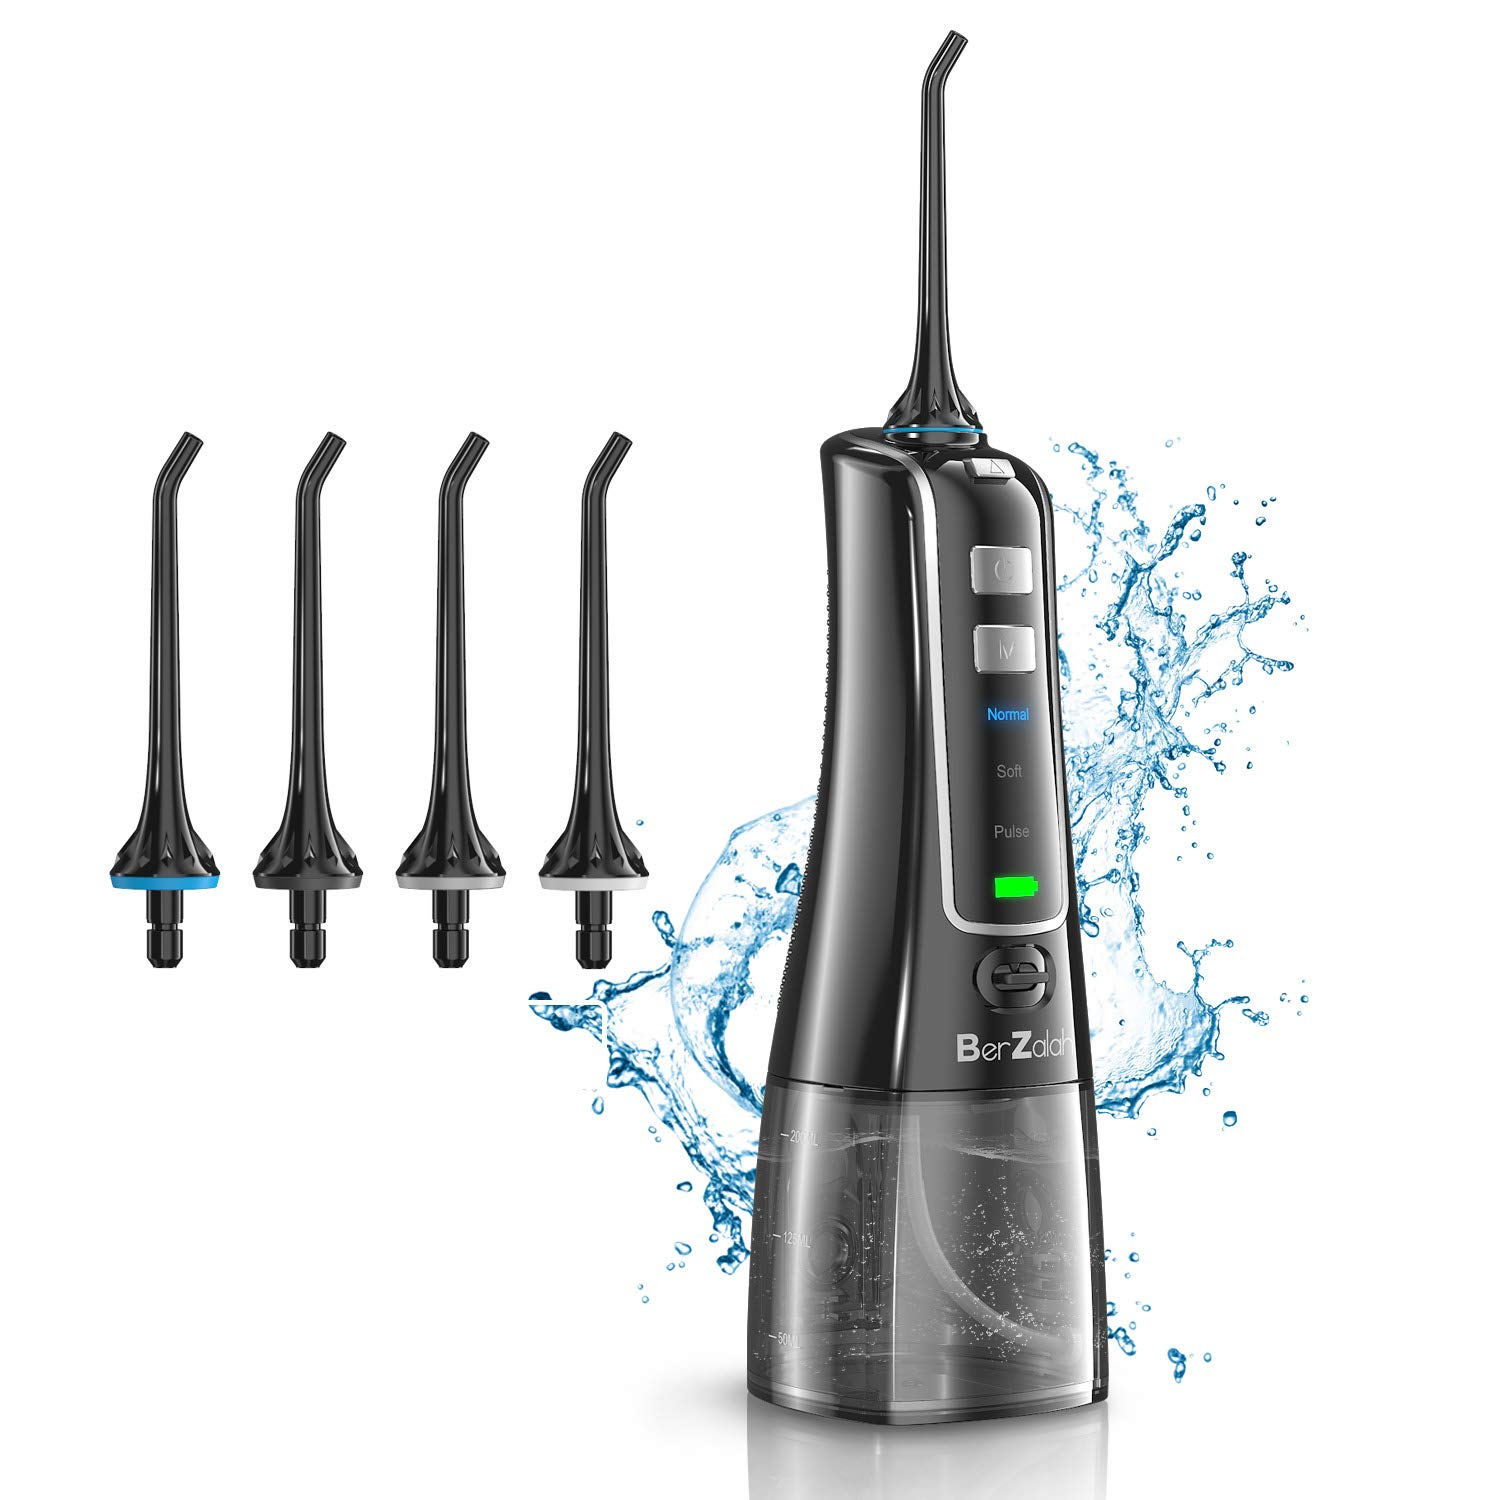 Top 5 Best Cheap Water Flossers for Sale Reviews In 2021